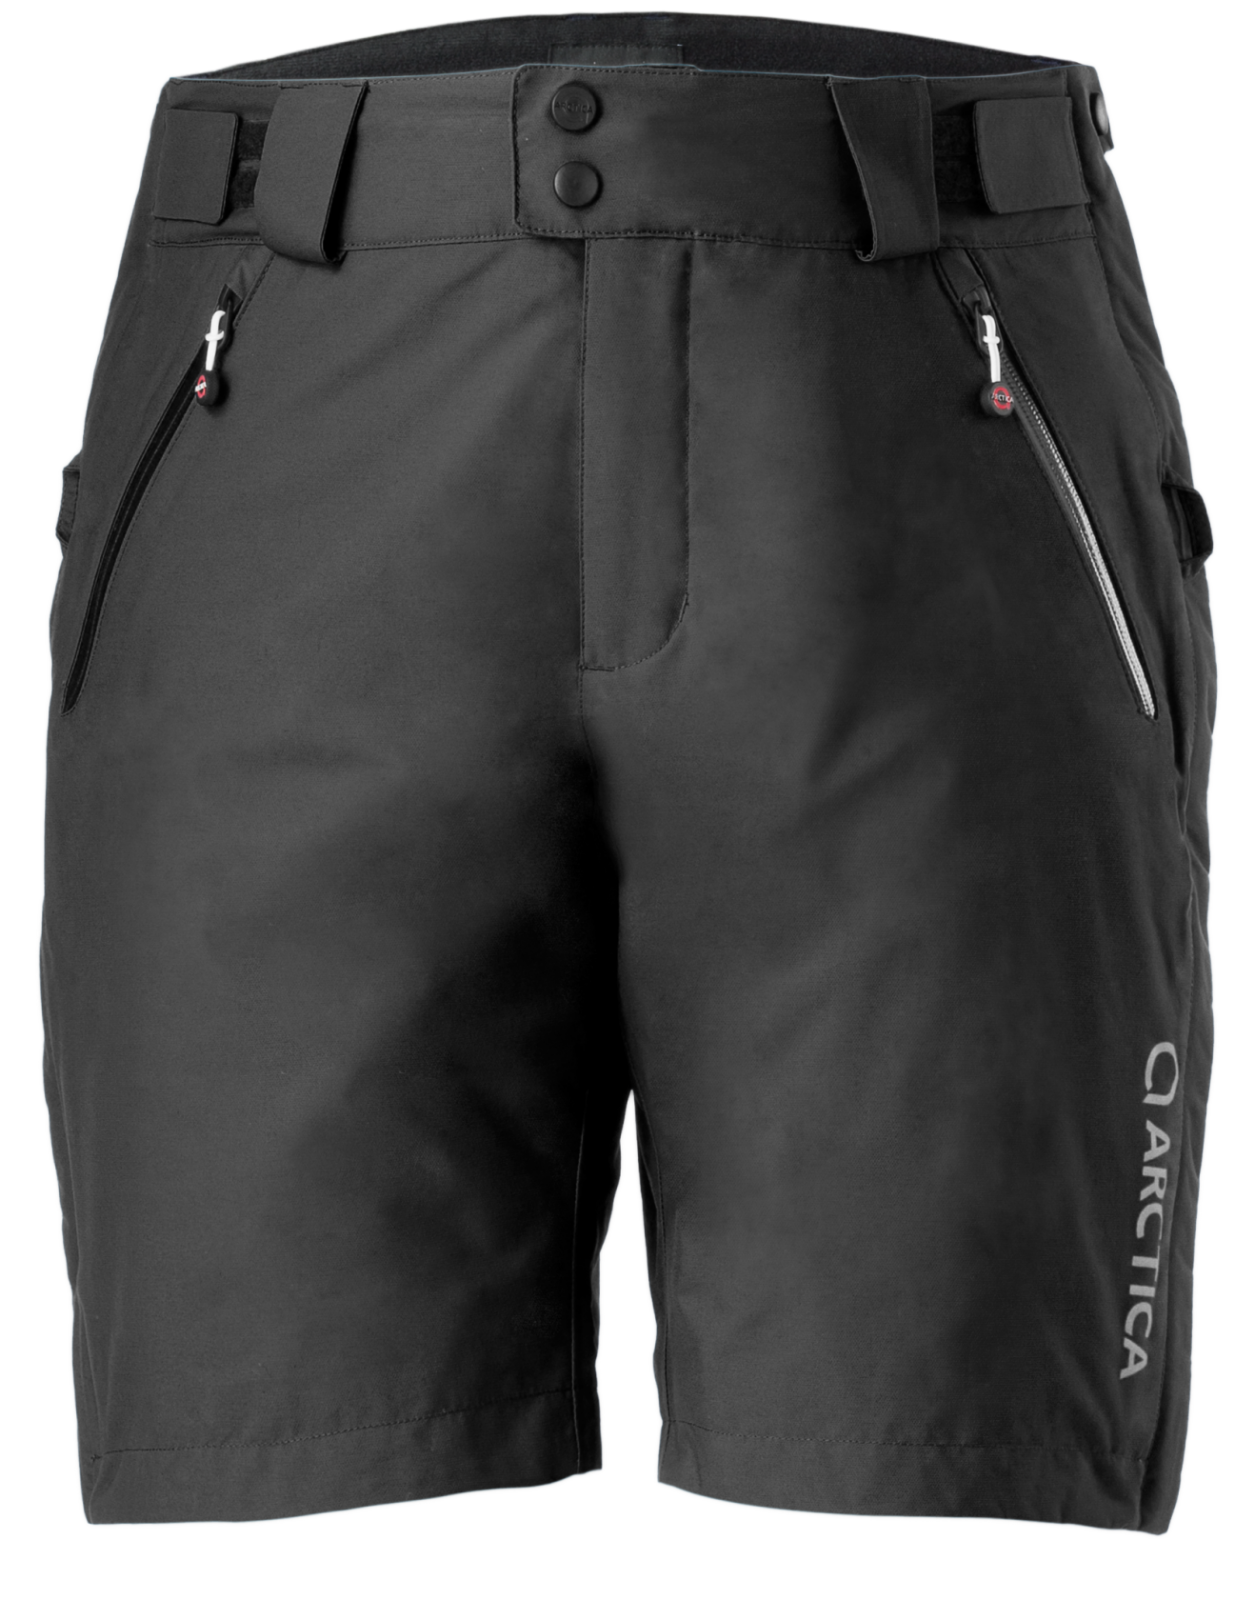 86f1226c8d Arctica Race Training Short 2.0 - 84476301762